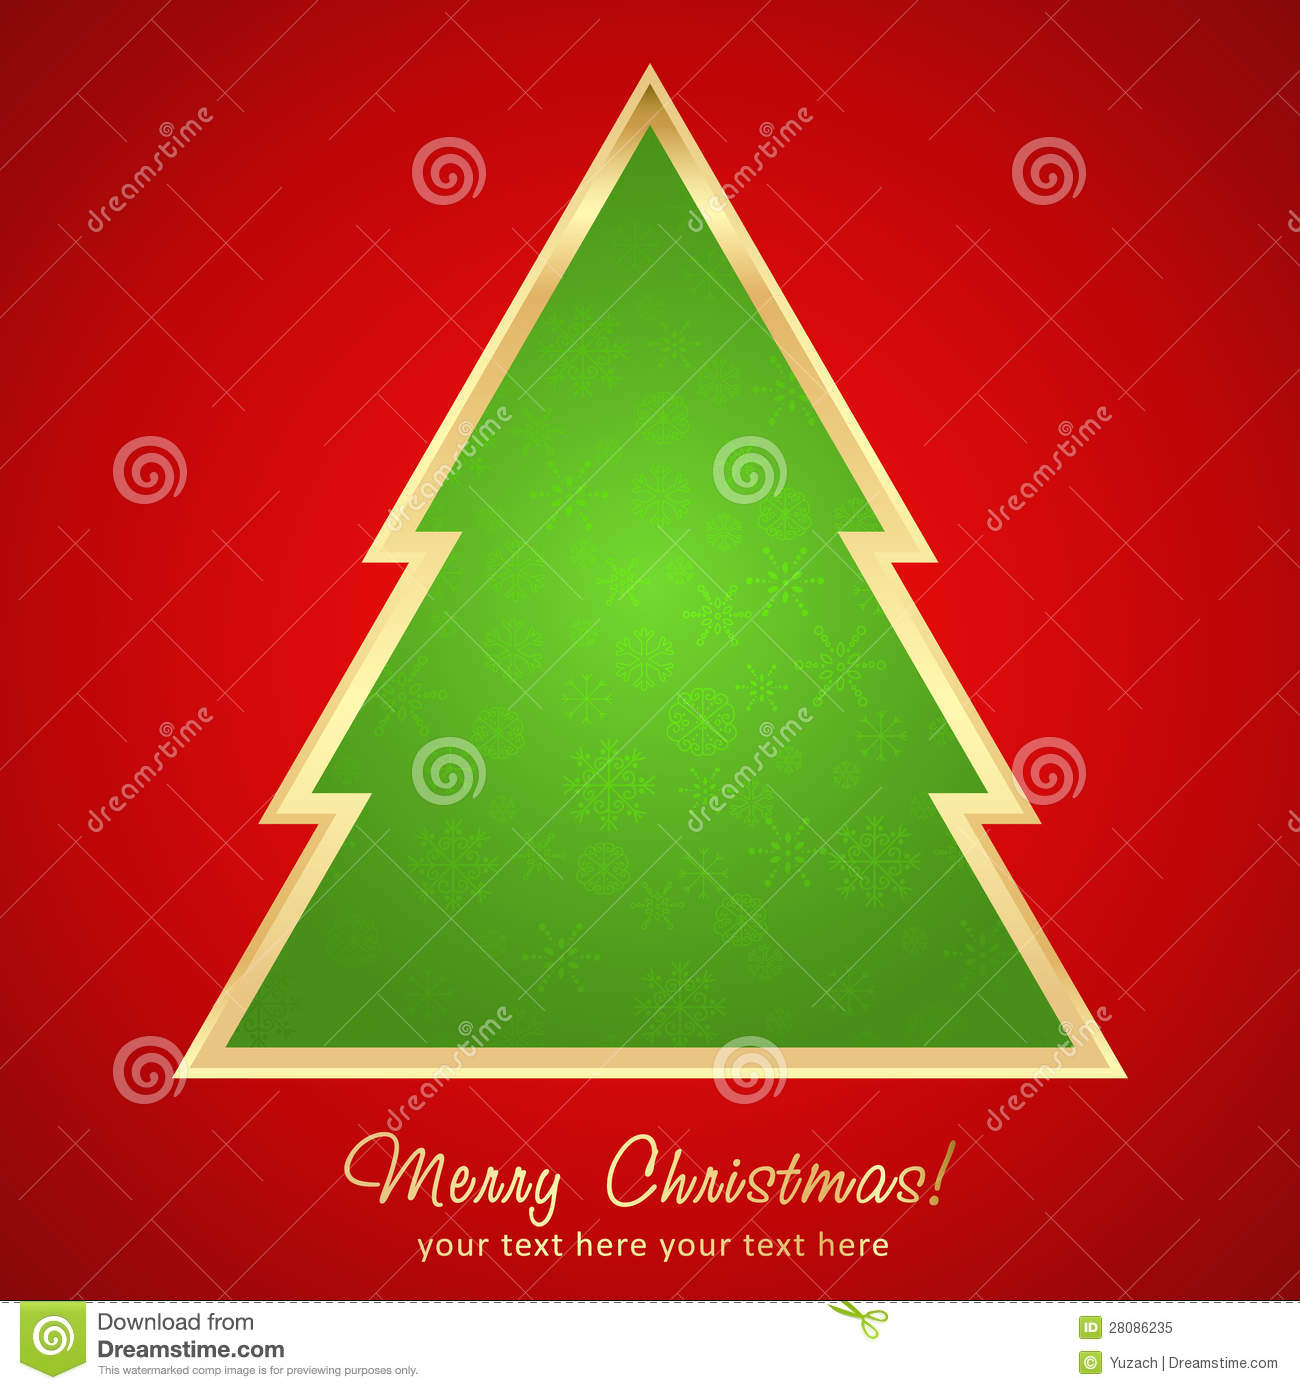 Christmas Greeting Card With Cartoon Tree Royalty Free Stock Photo - Image: 28086235